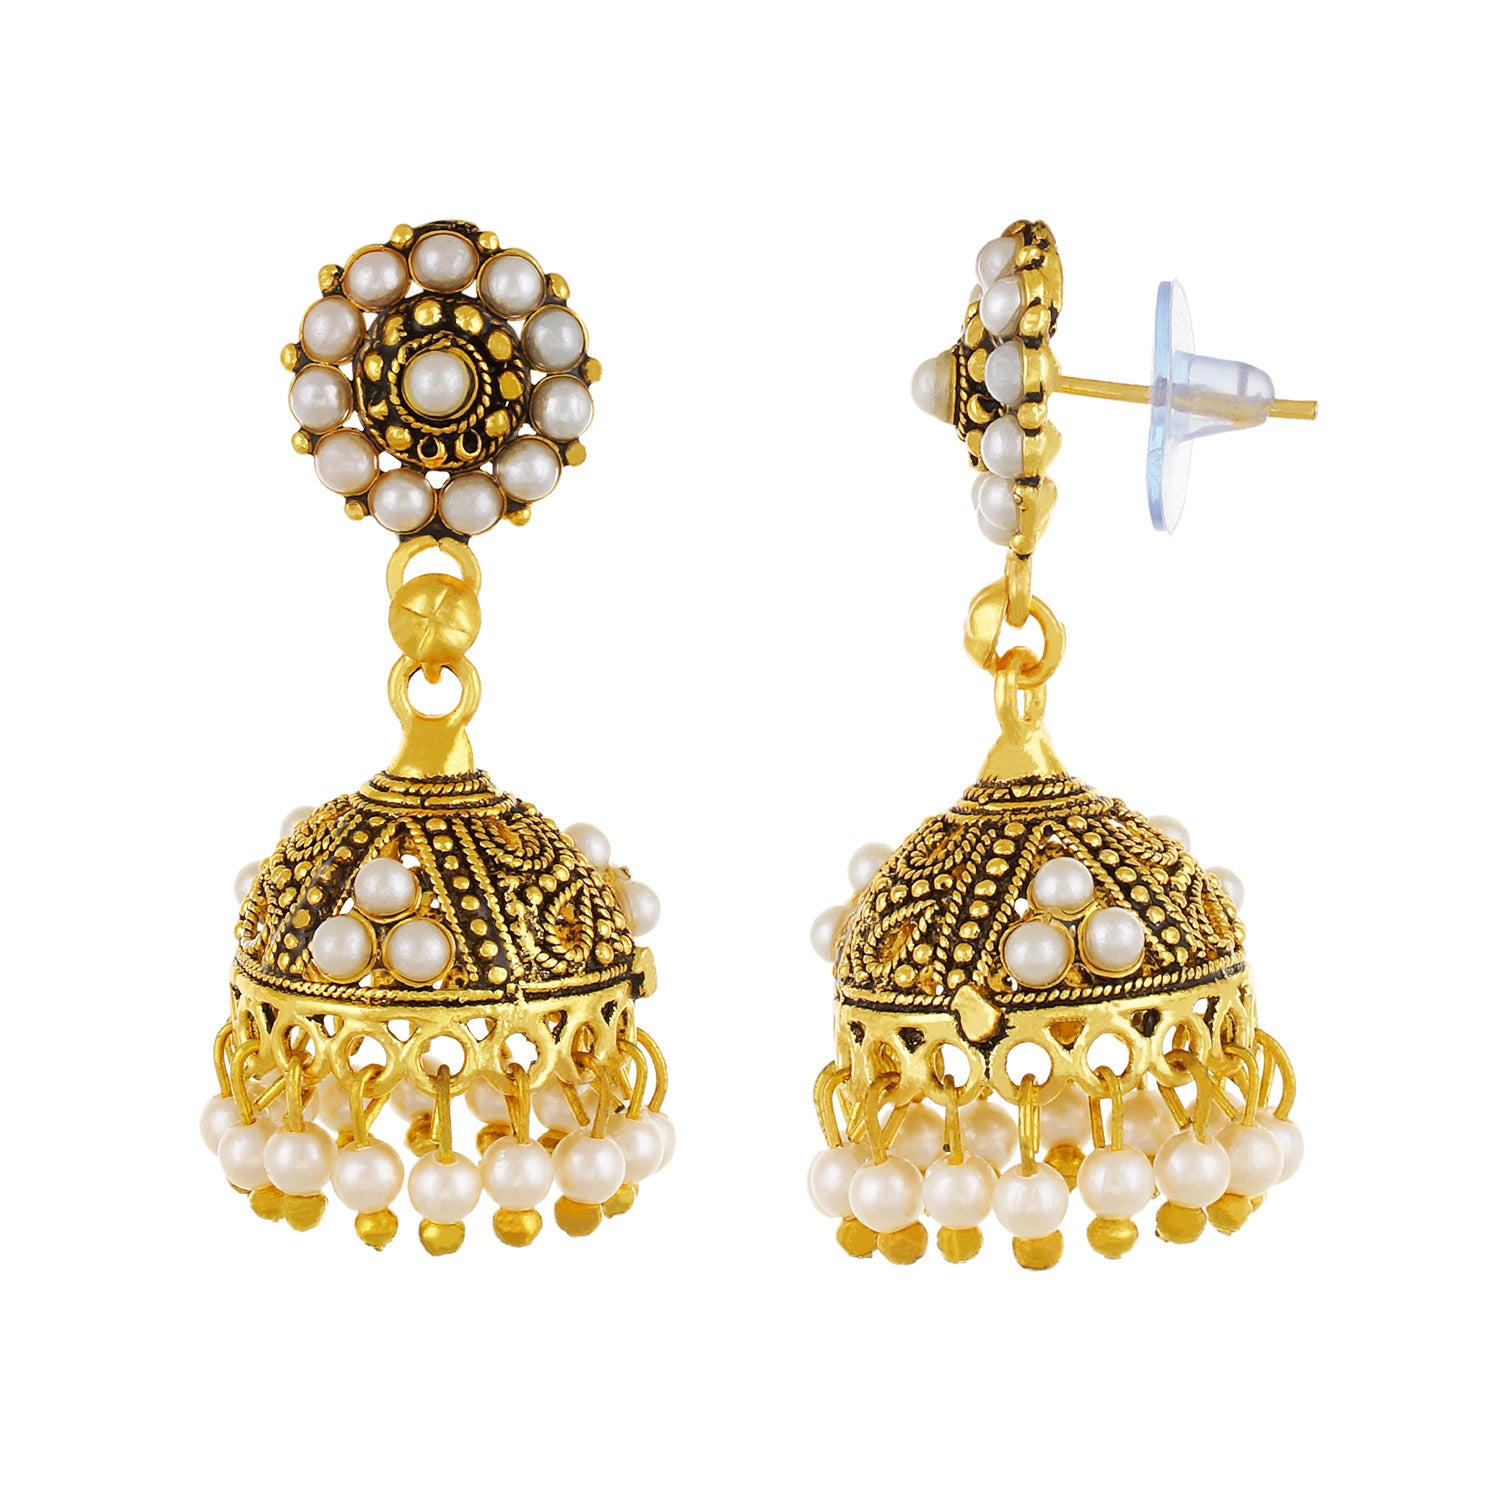 Gold plated Pearl Jhumki Earrings Fashion Imitaion Jewelry for Girls and Women